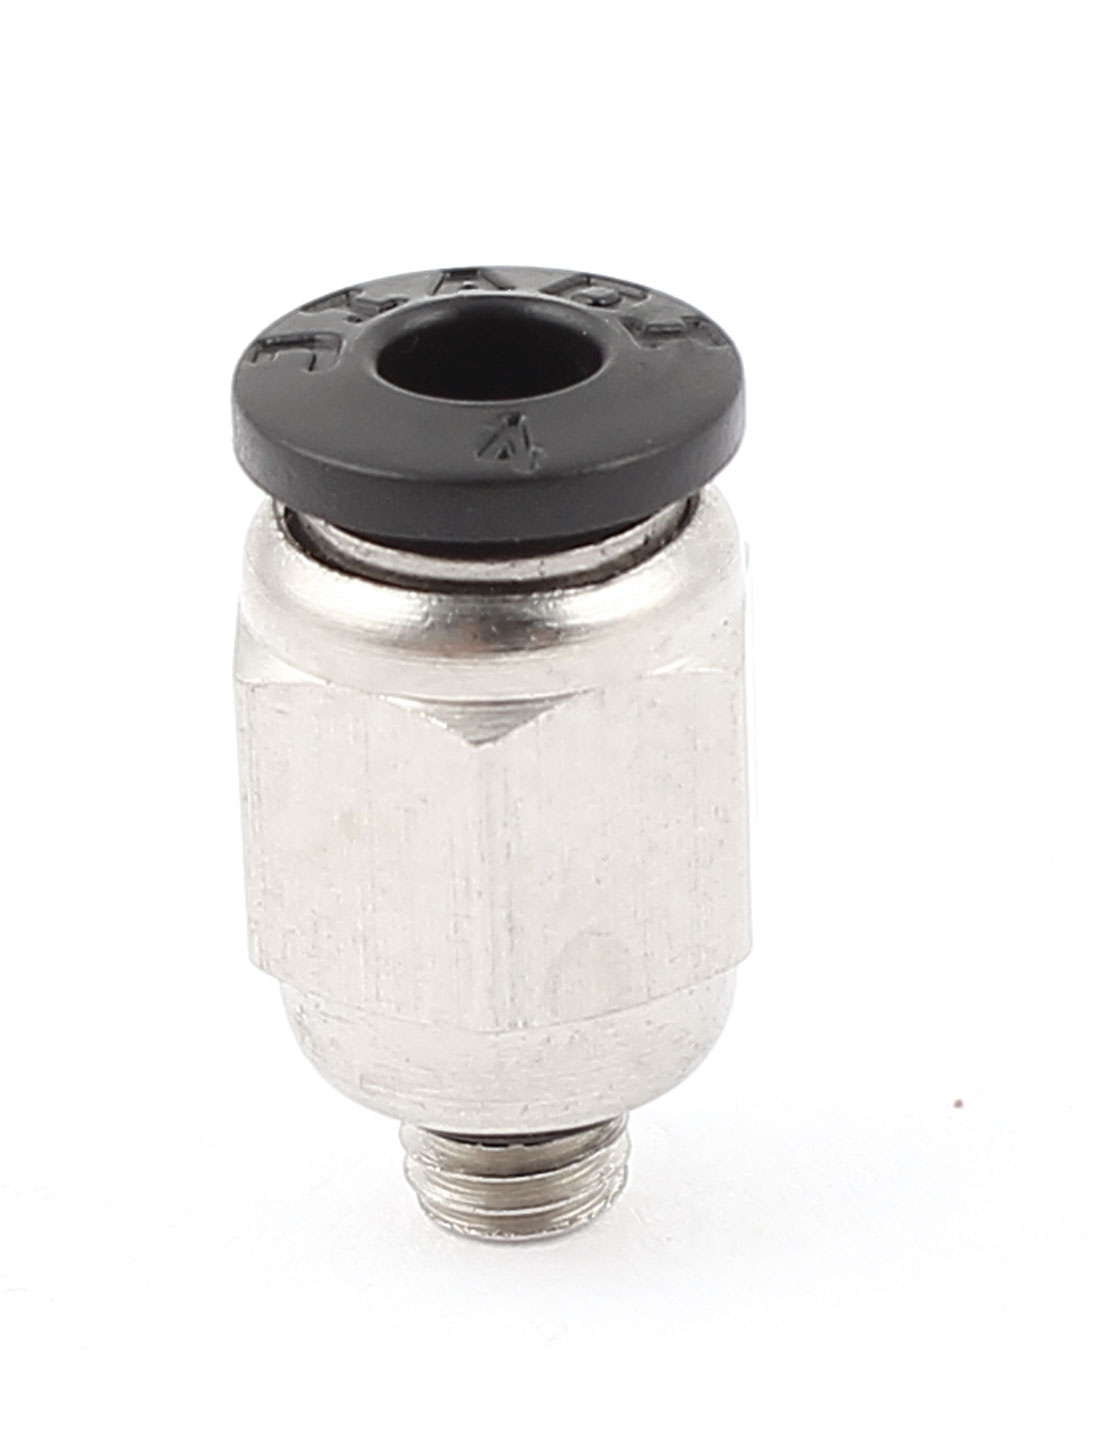 Mm male thread push in joint pneumatic connector